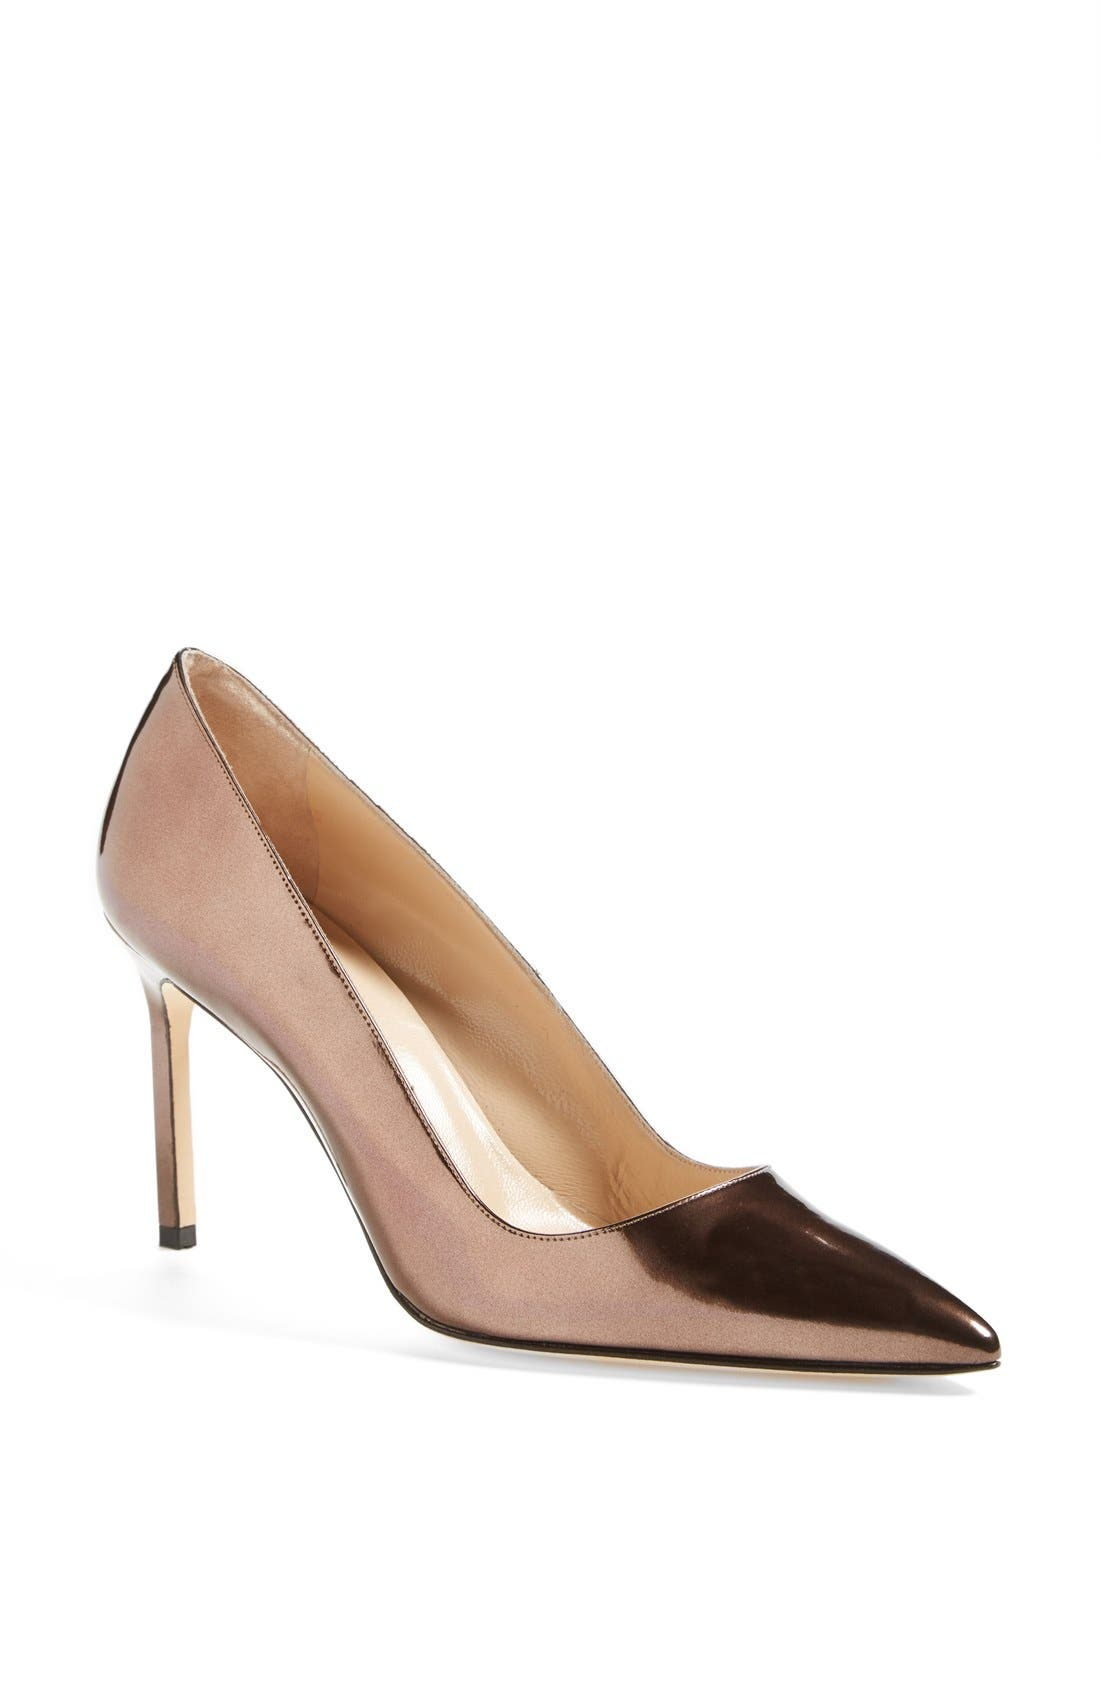 Main Image - Manolo Blahnik 'BB' Patent Leather Pointy Toe Pump